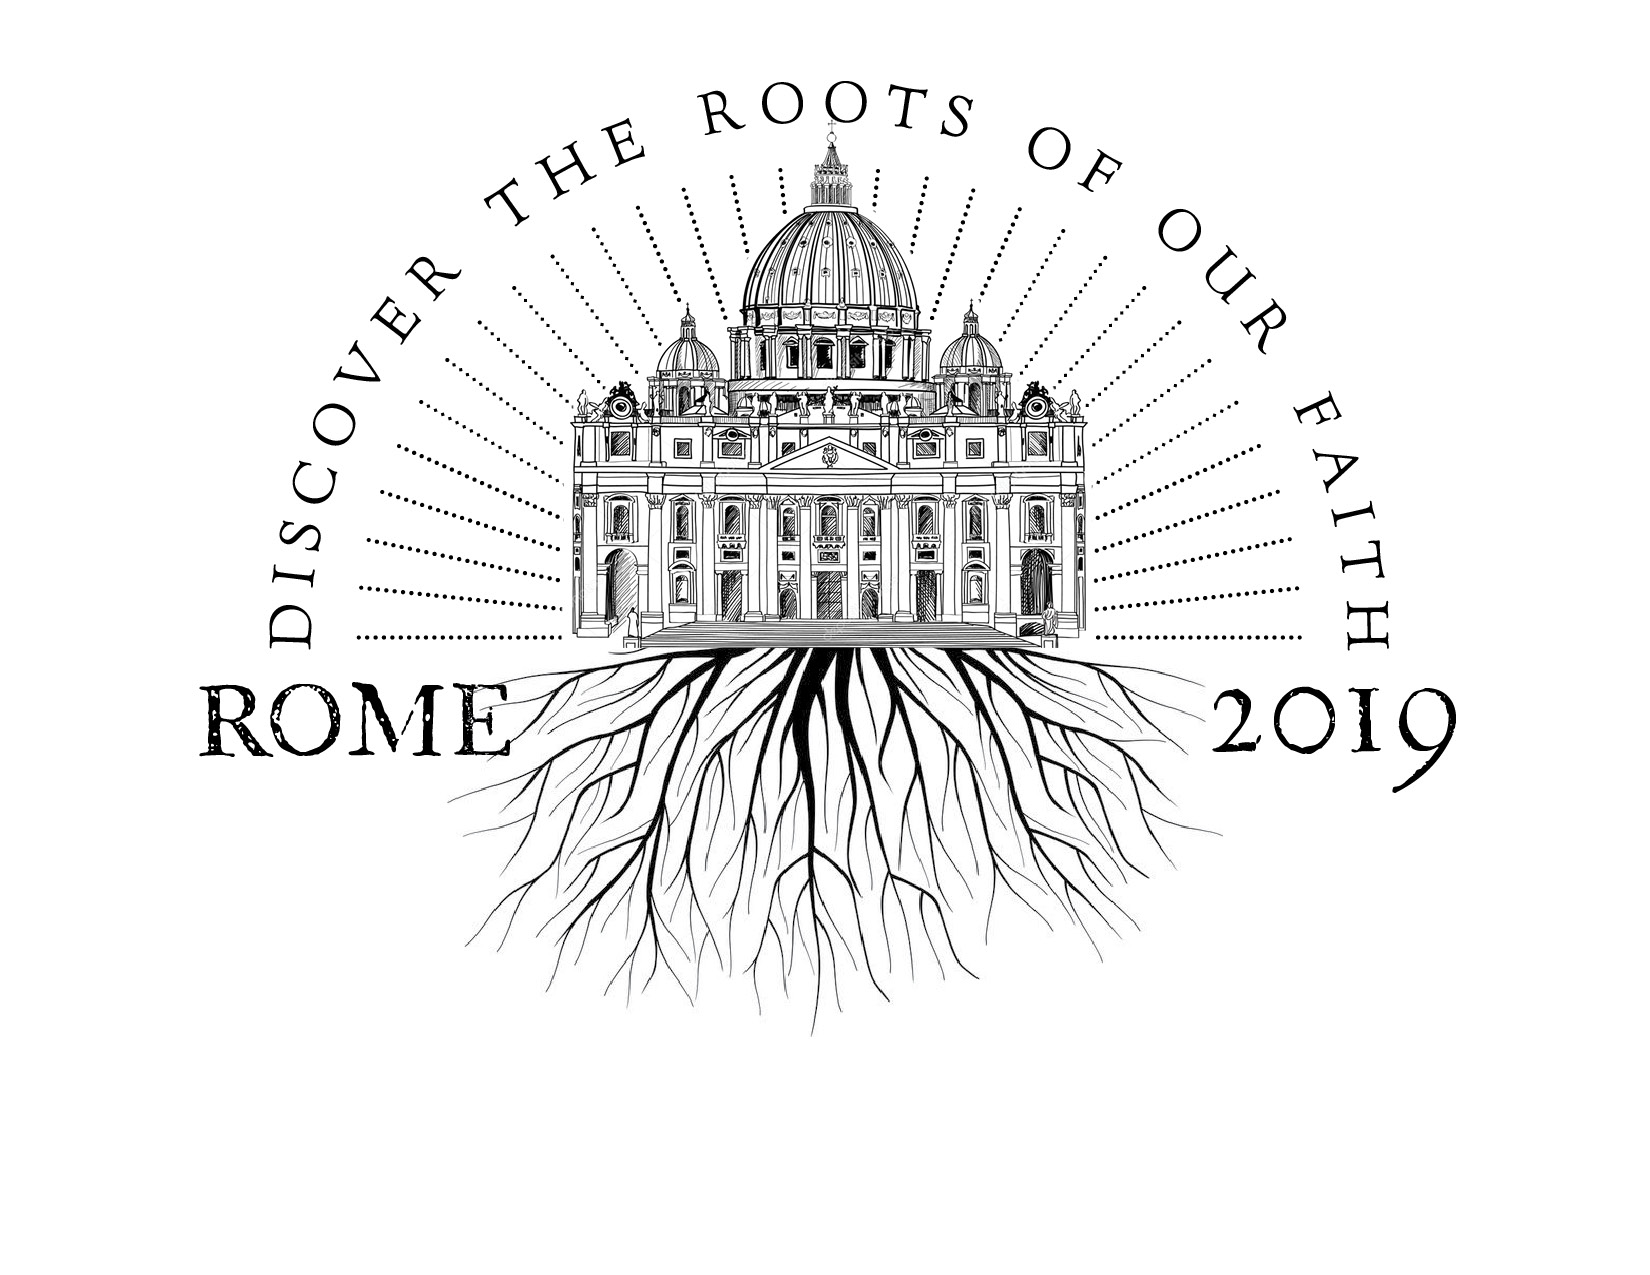 discover-roots-logo2.jpg